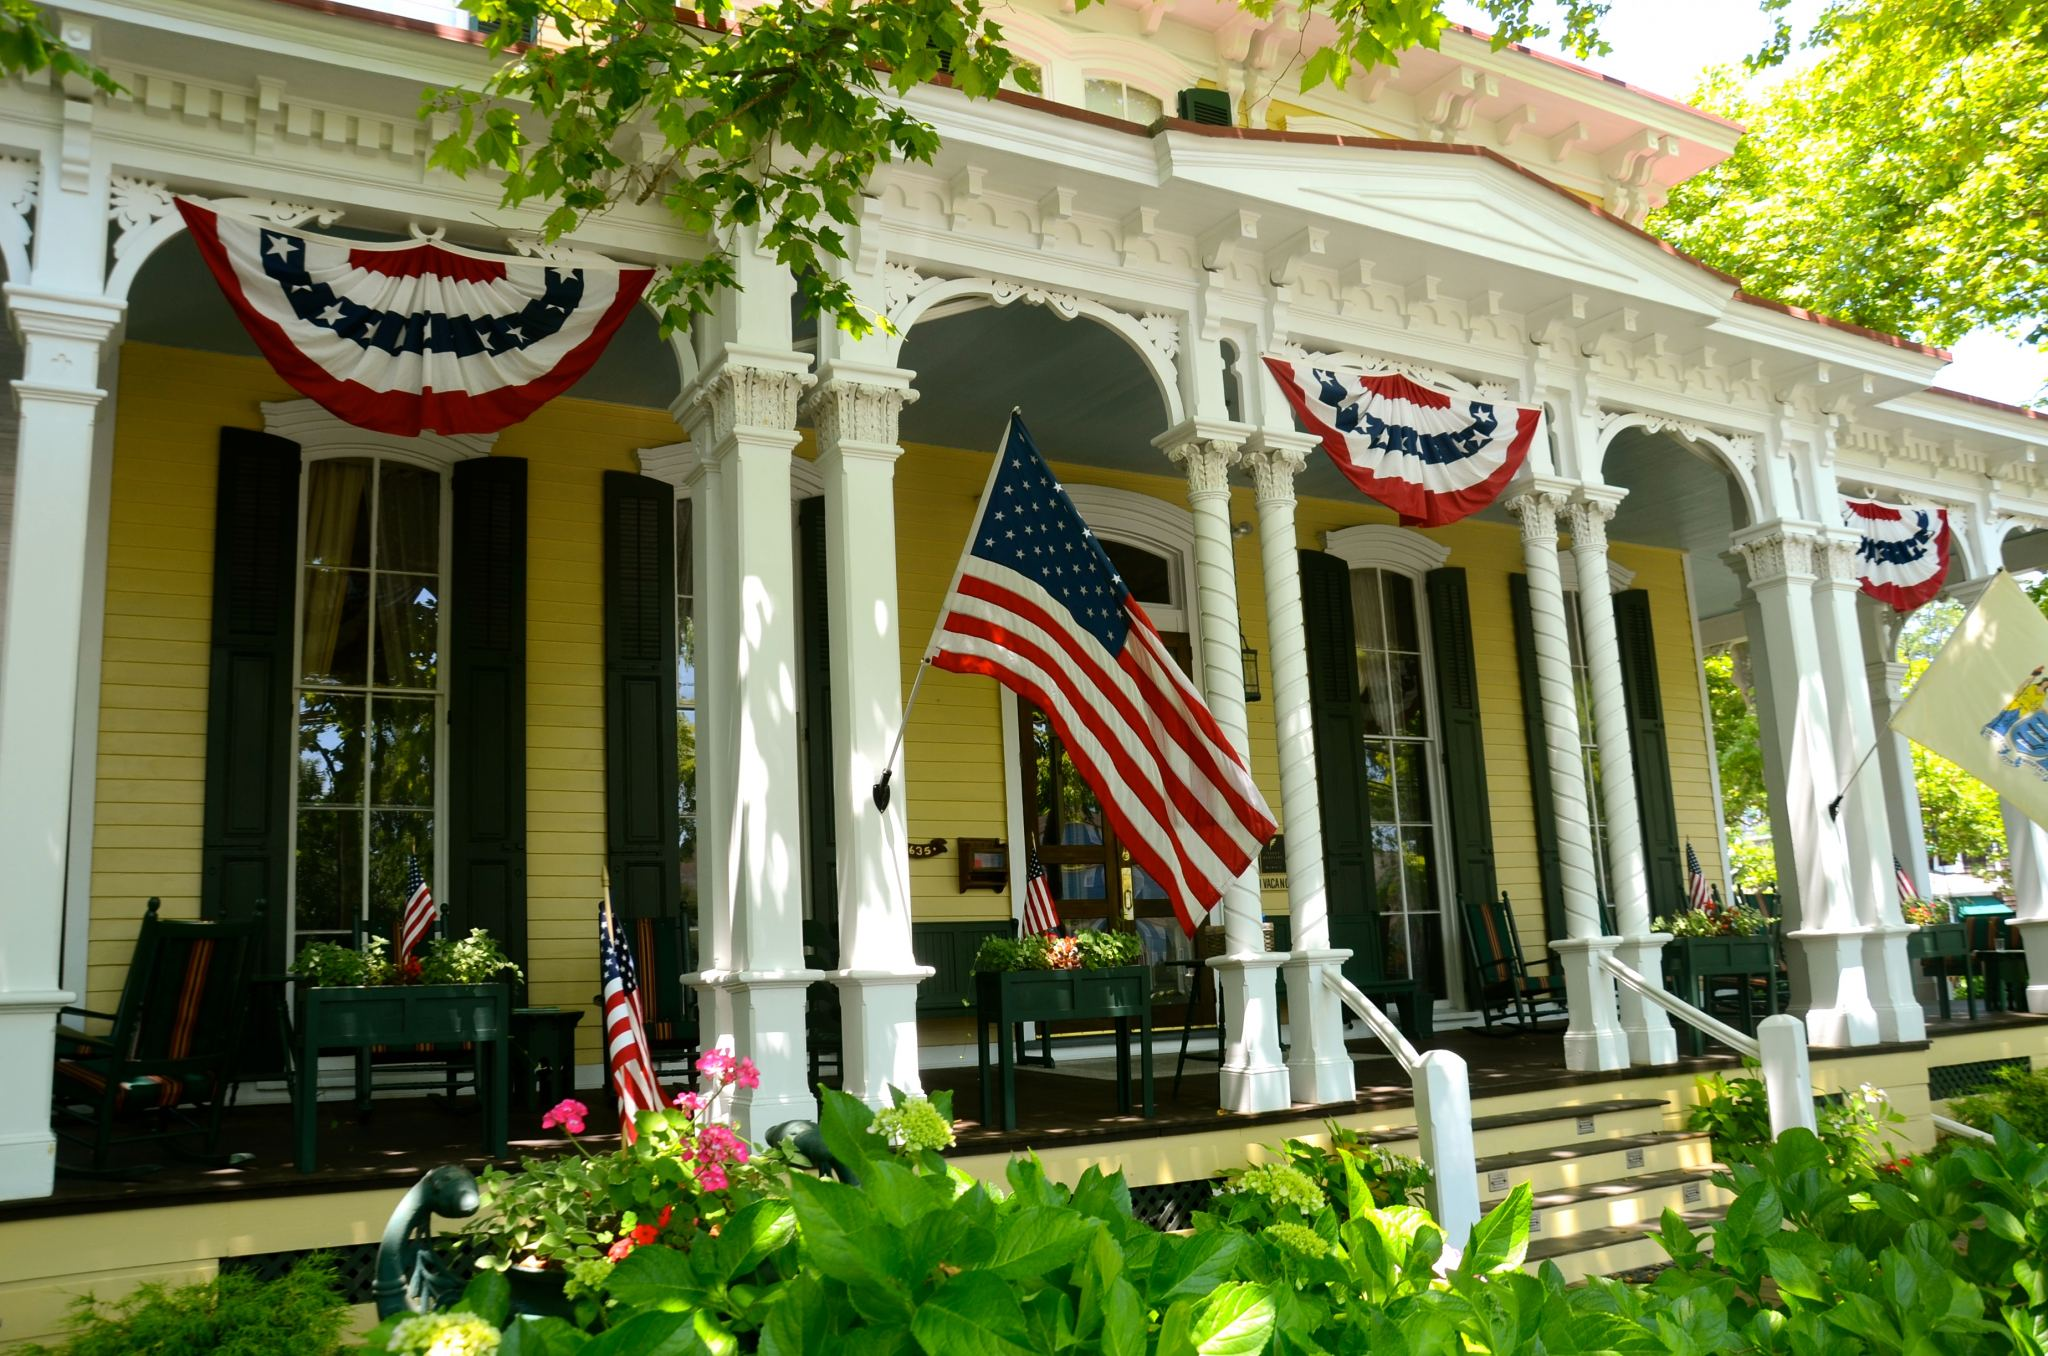 Cape May porch with Independence Day decor